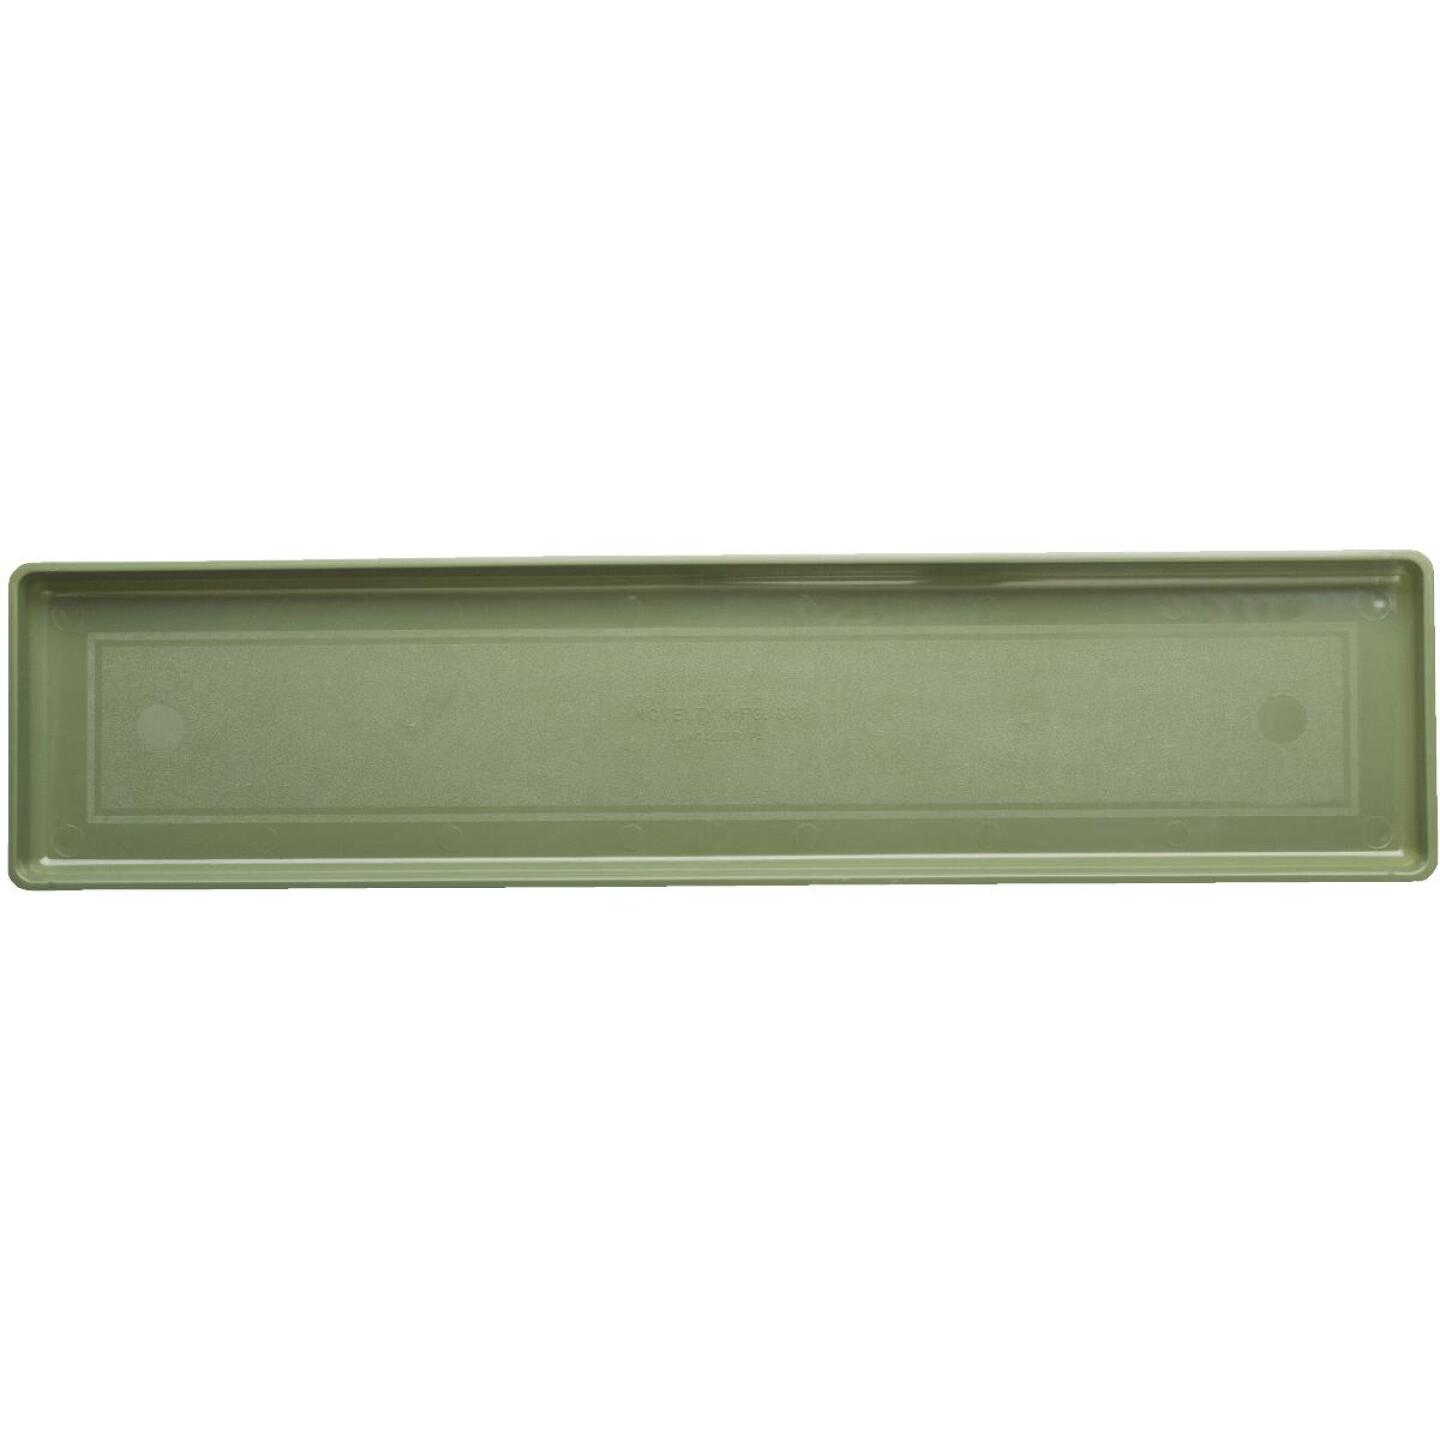 Novelty 26-3/8 In. Sage Plastic Flower Box Tray Image 1